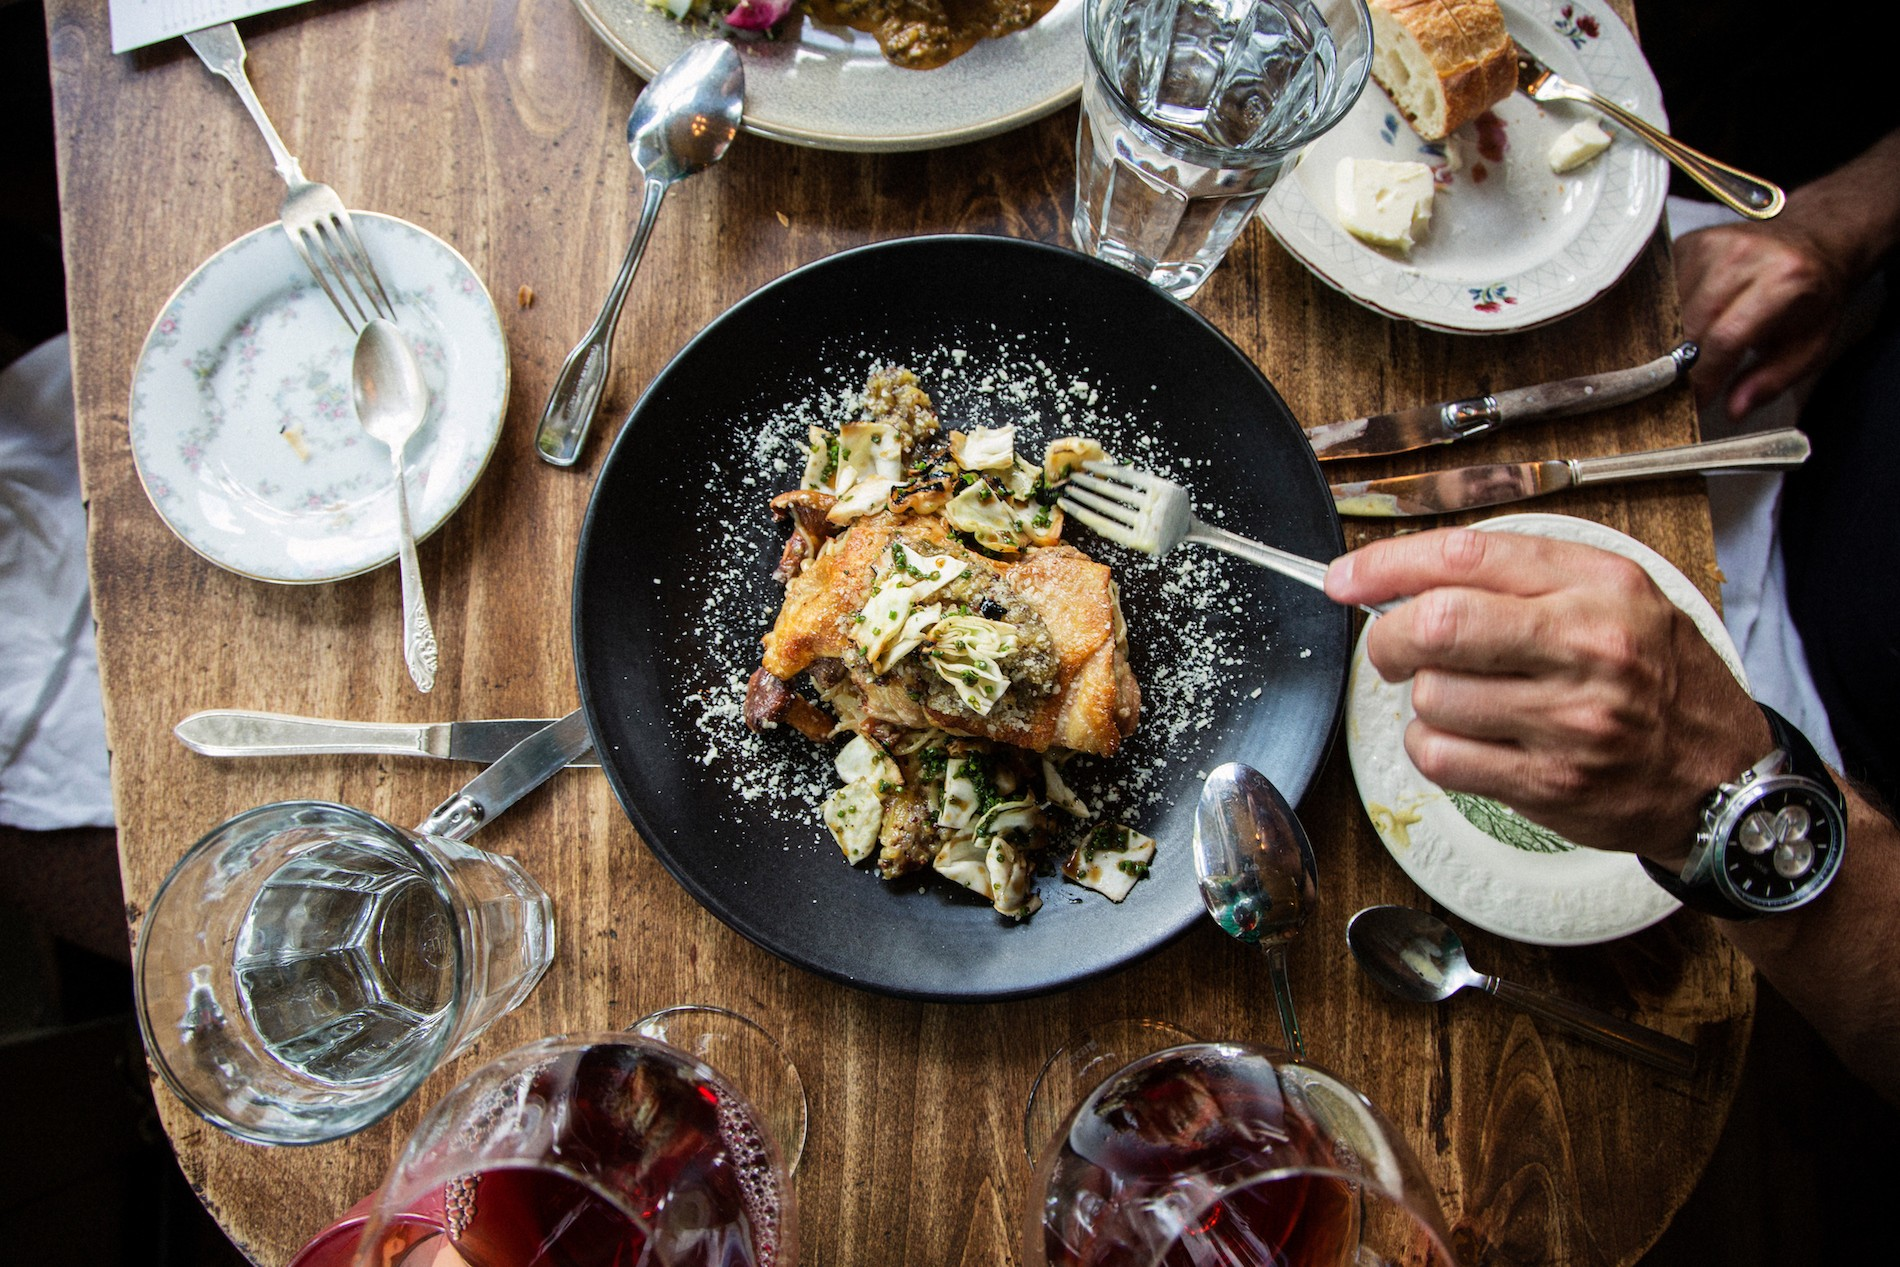 Sage Roasted Chicken* prosciutto & chanterelle noodles, truffle-pineapple relish, parmesan Le Pigeon restaurant. Mushrooms in Portland, Oregon. August 2016. Matt Lutton / Boreal Collective for Vice Munchies